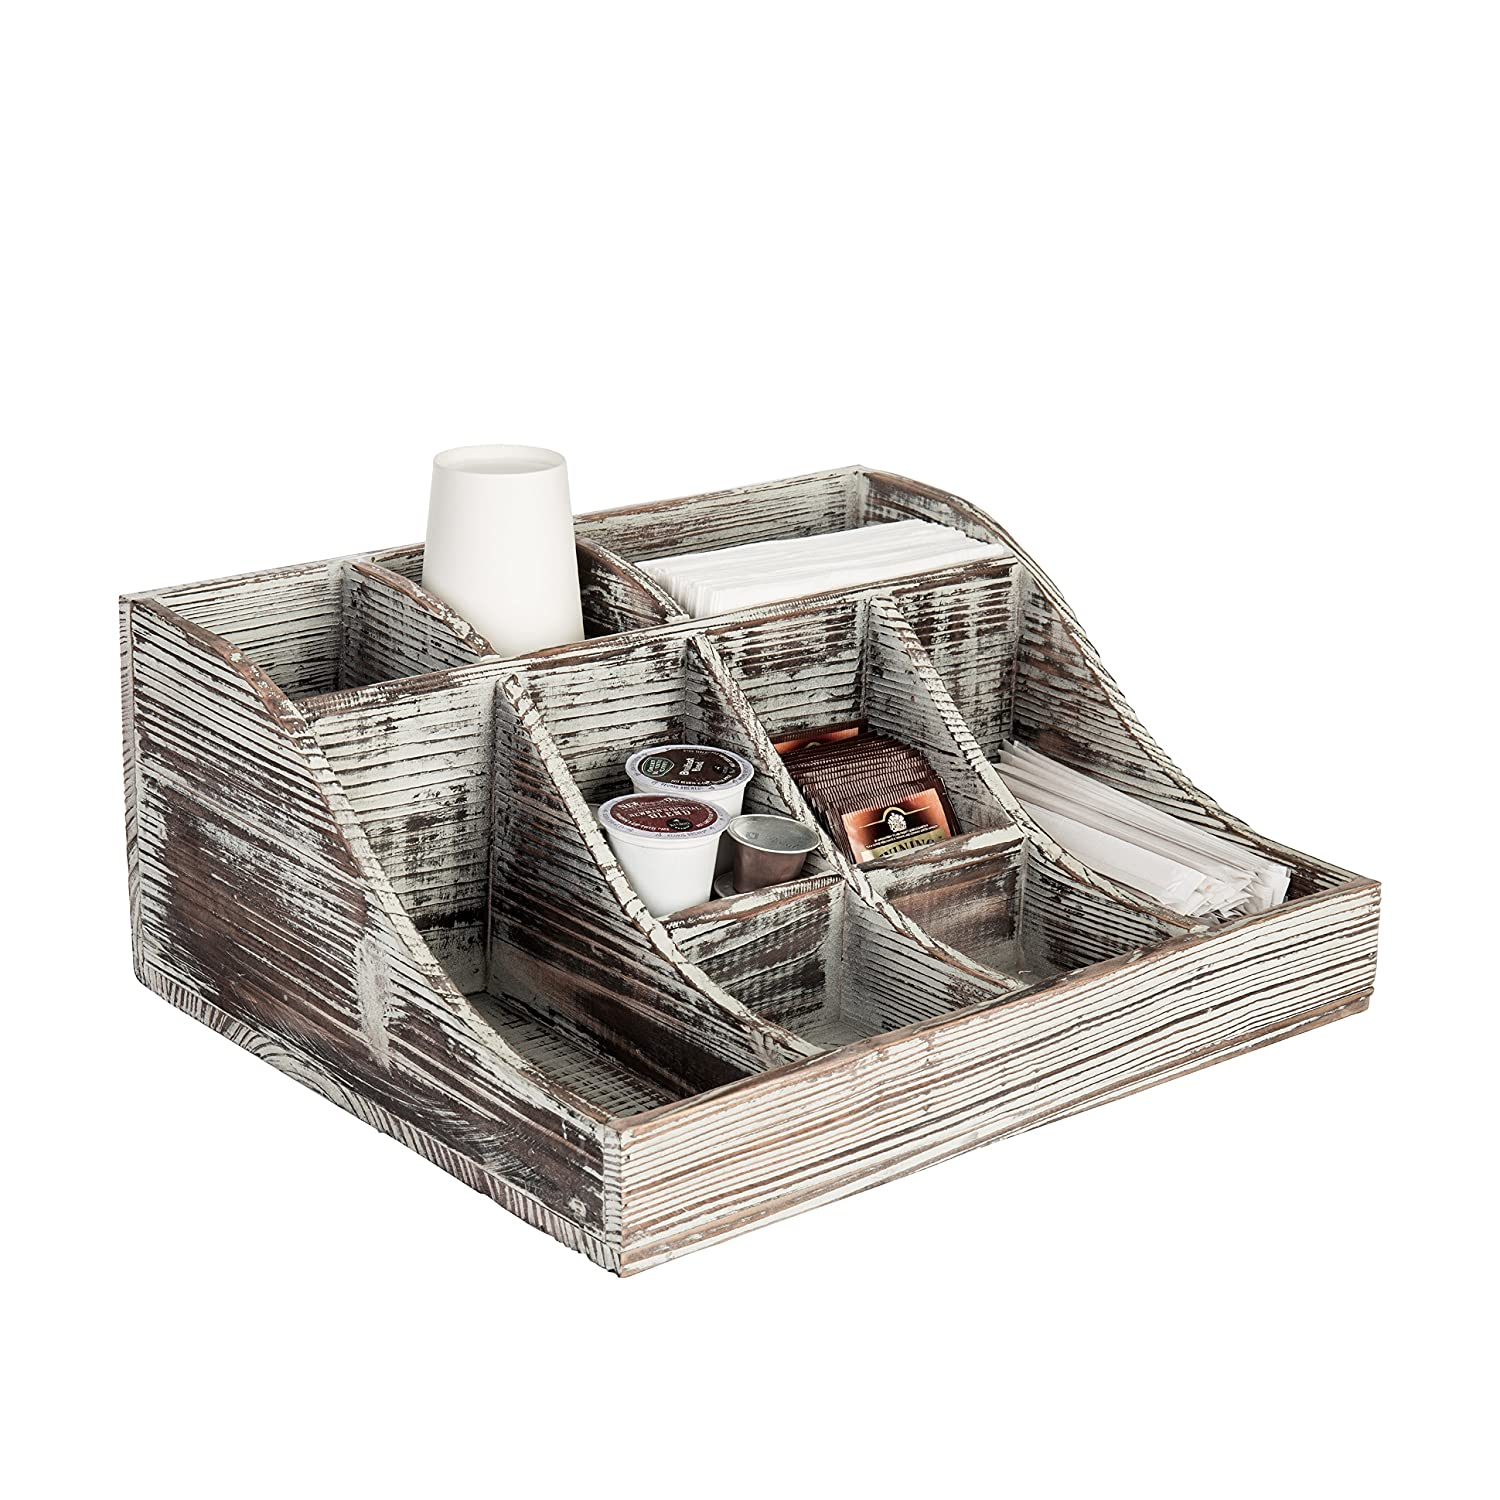 9-Compartment Rustic Torched Wood Tabletop Condiment Holder, Coffee & Tea Storage Caddy MyGift